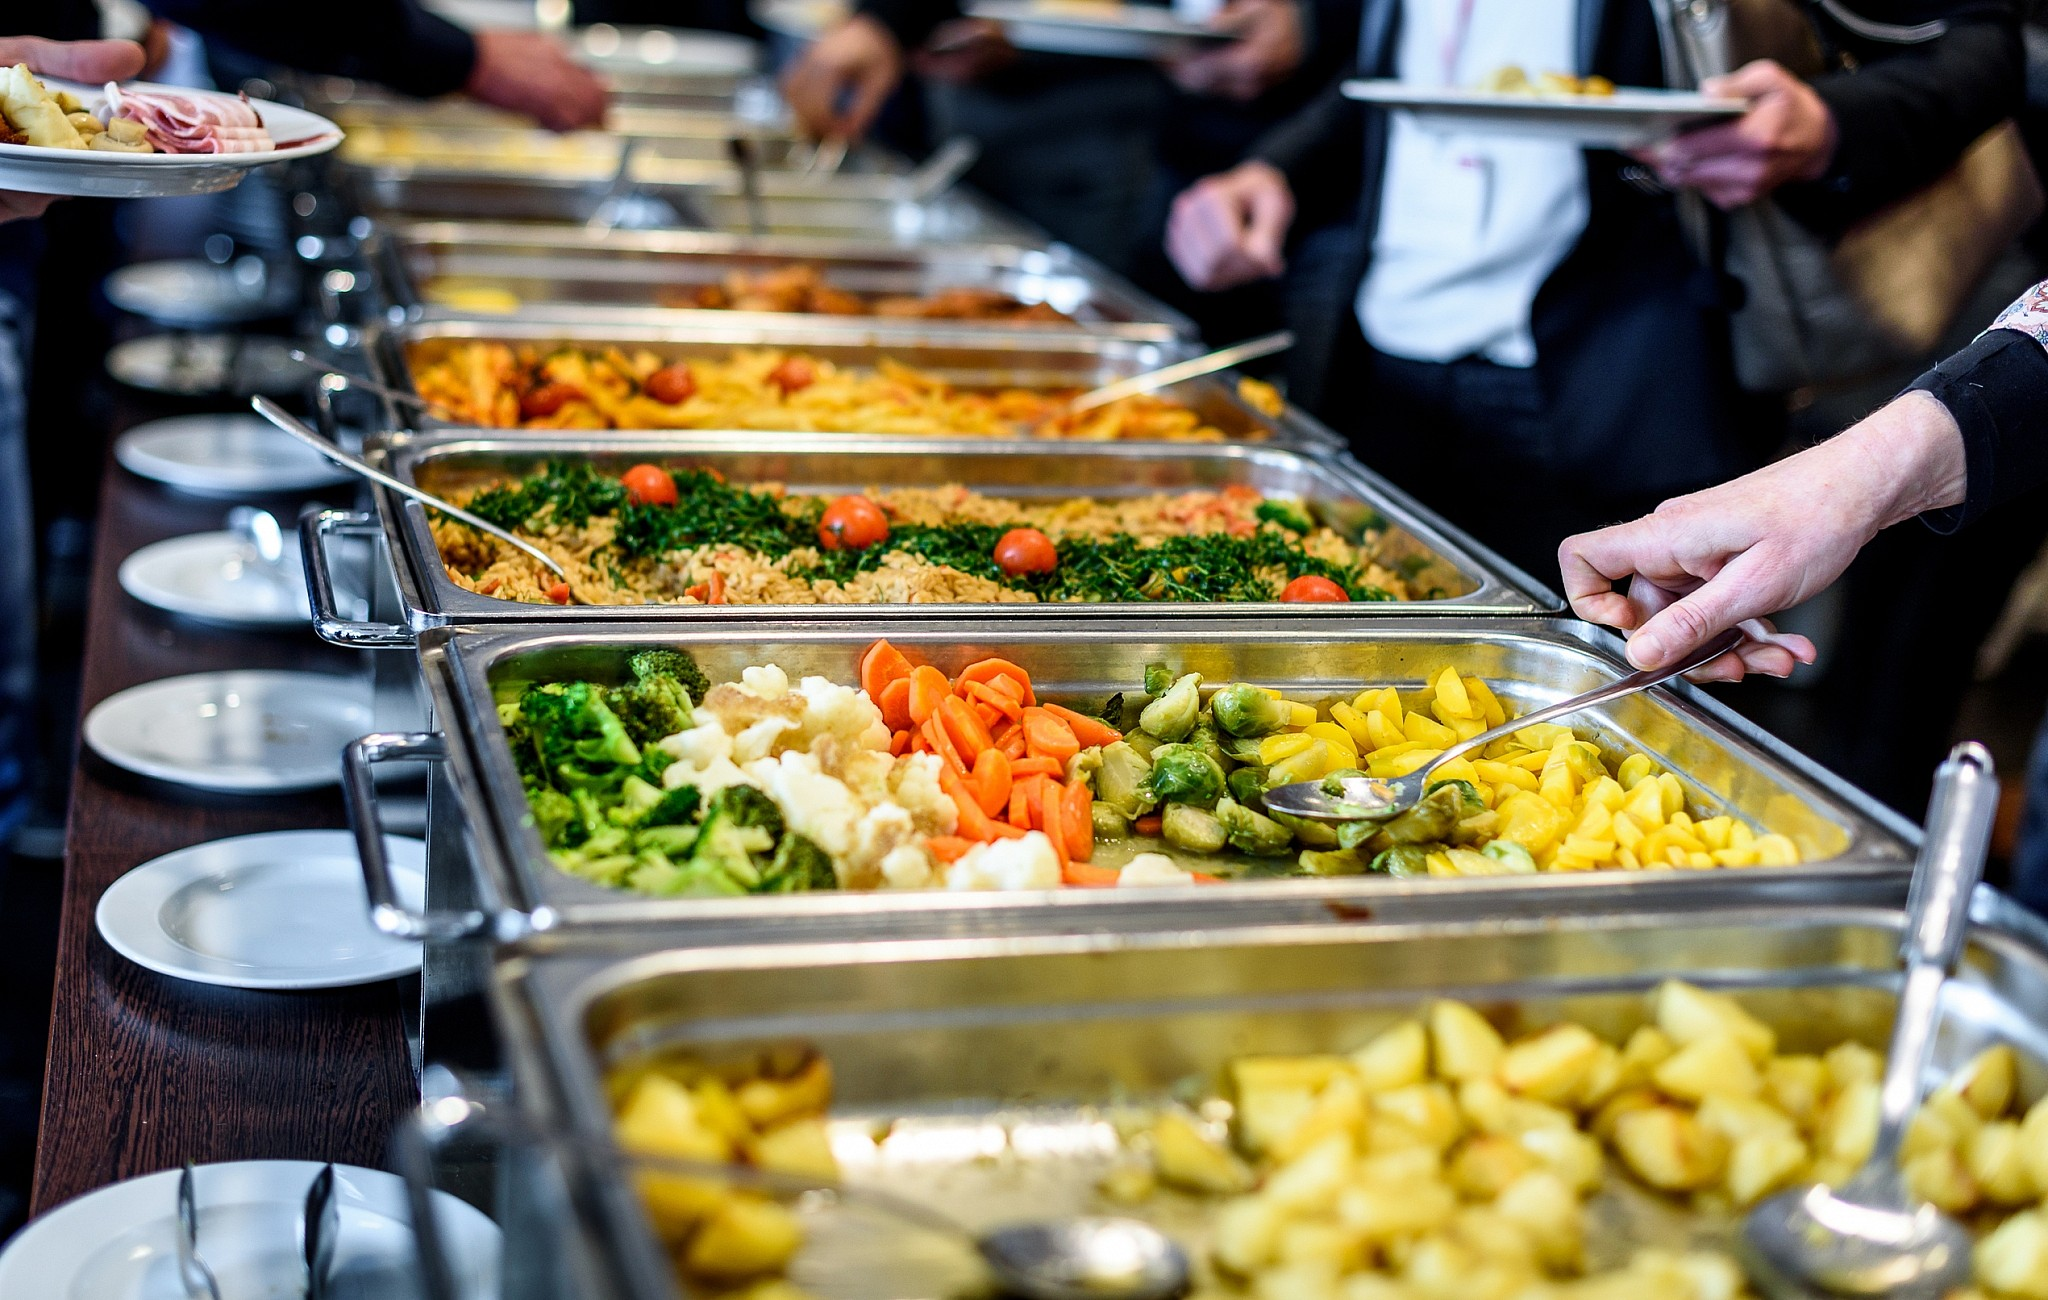 What is the difference between halal food and ordinary food